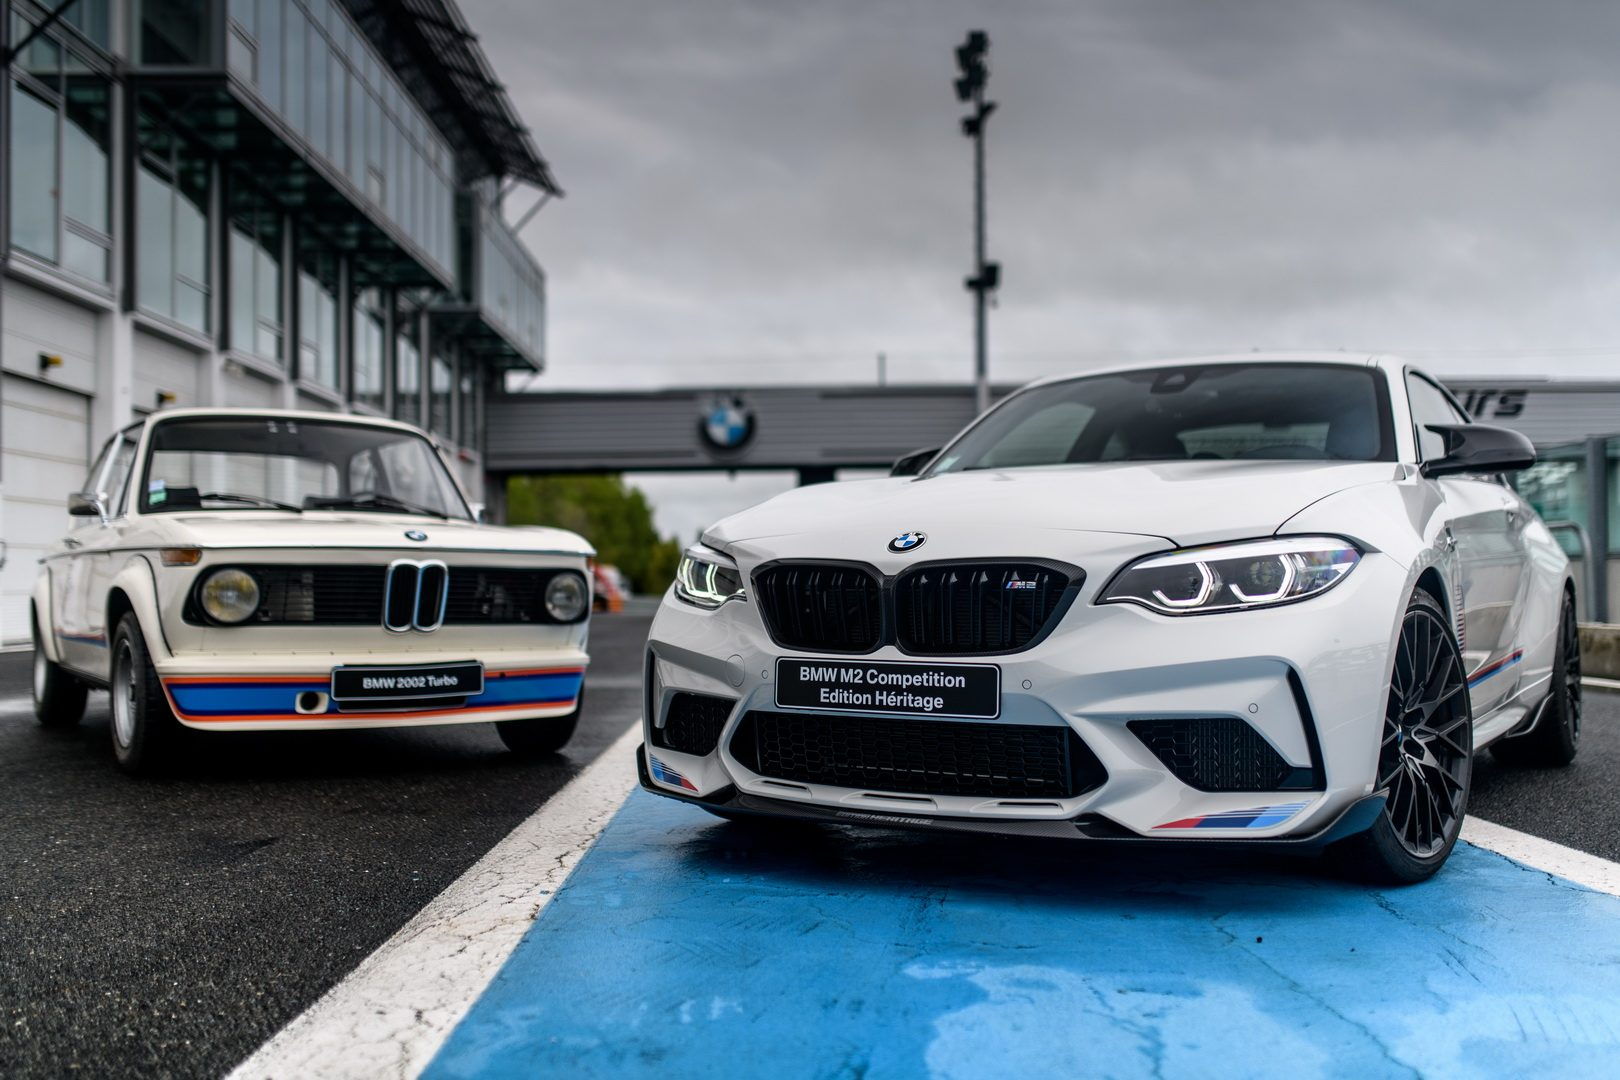 01-bmw-m2-competition-heritage.jpg